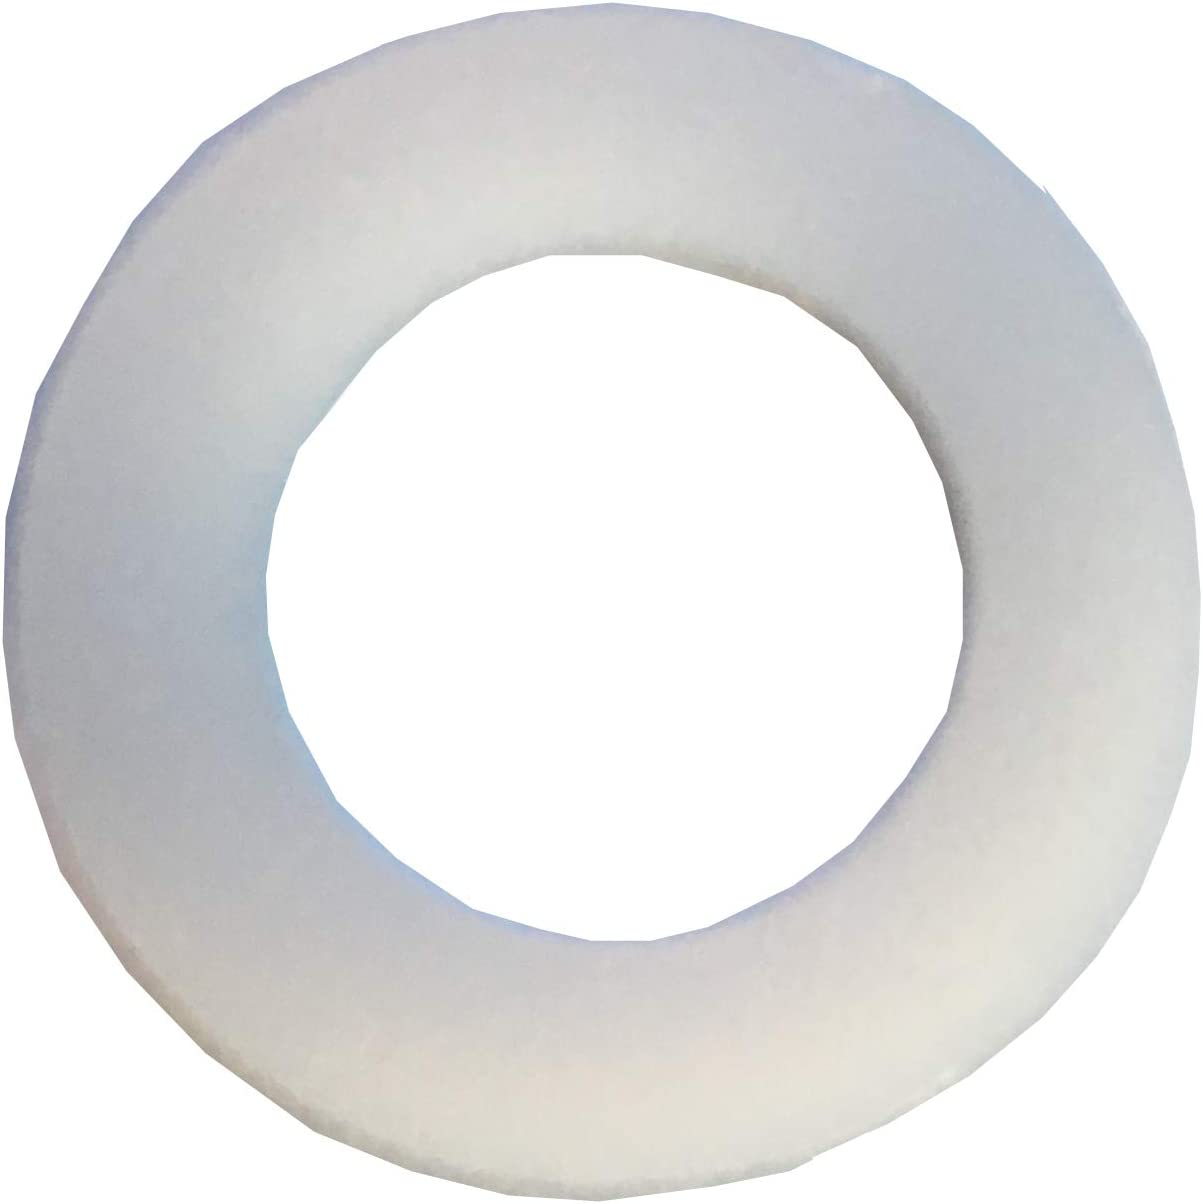 50 5//16 Nylon Flat Washers .343 I.D .062 Thick Clipsandfasteners Inc